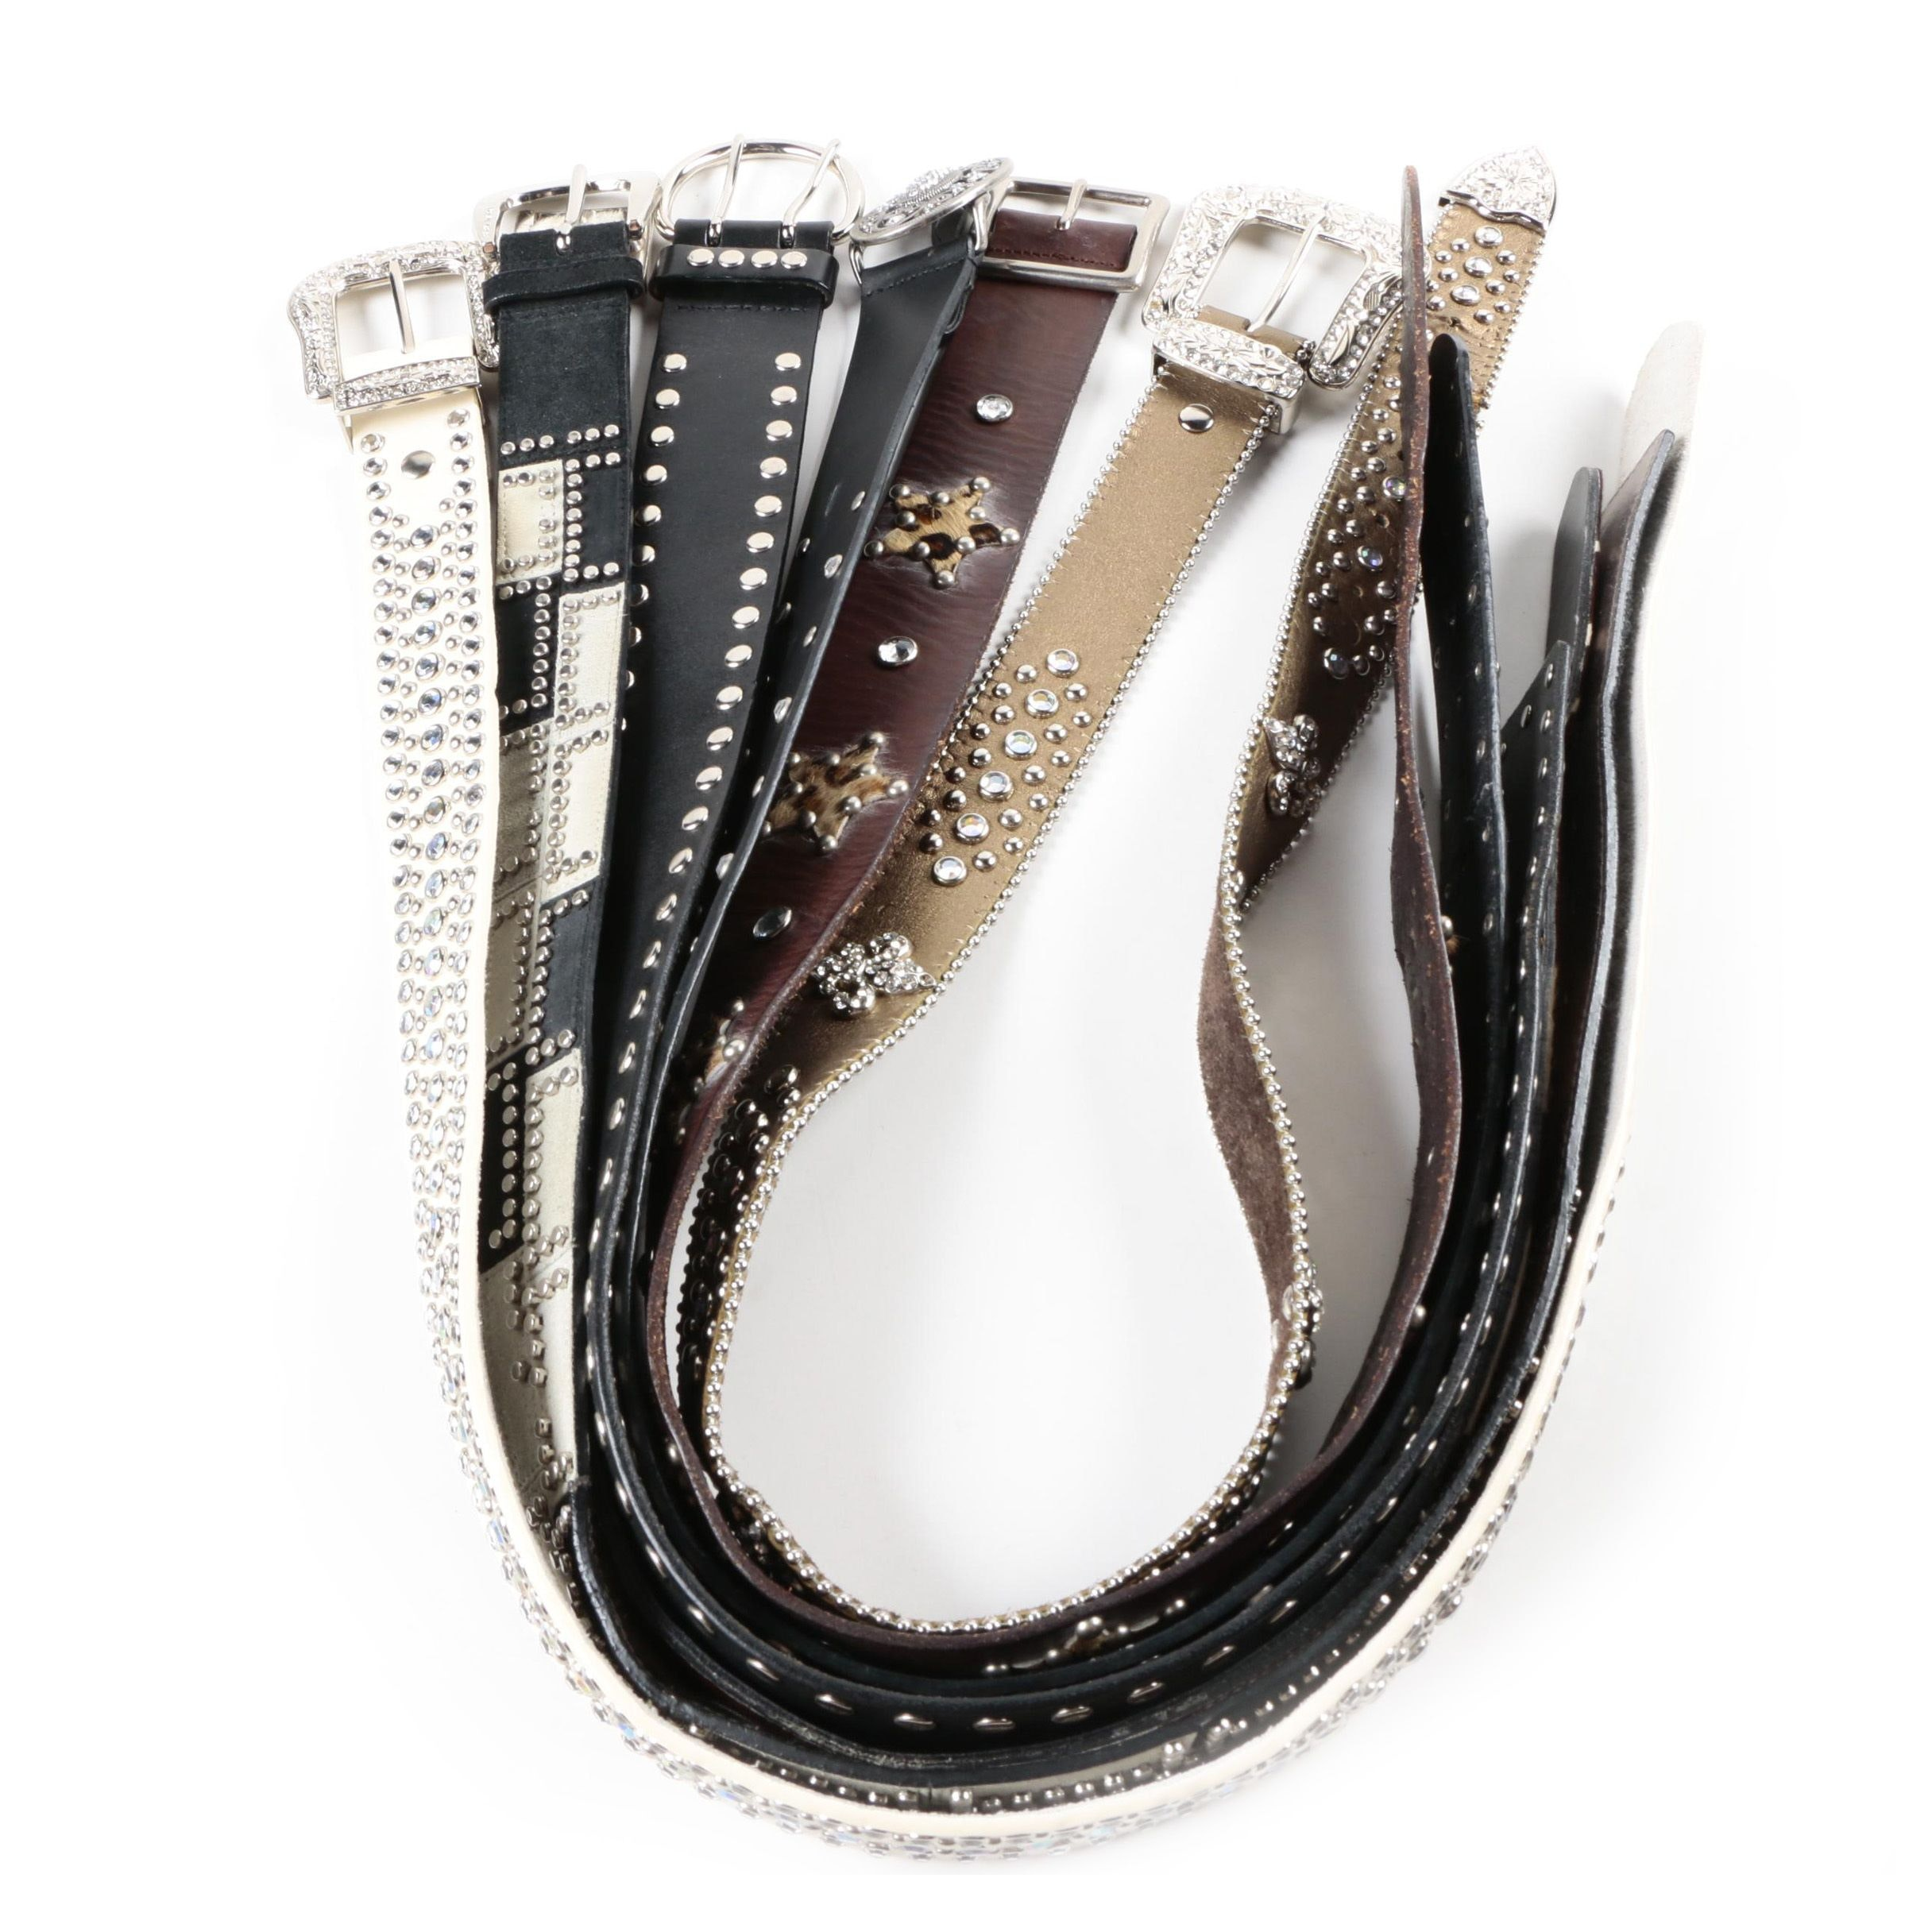 Women's Leather Belts Including Linea Pelle